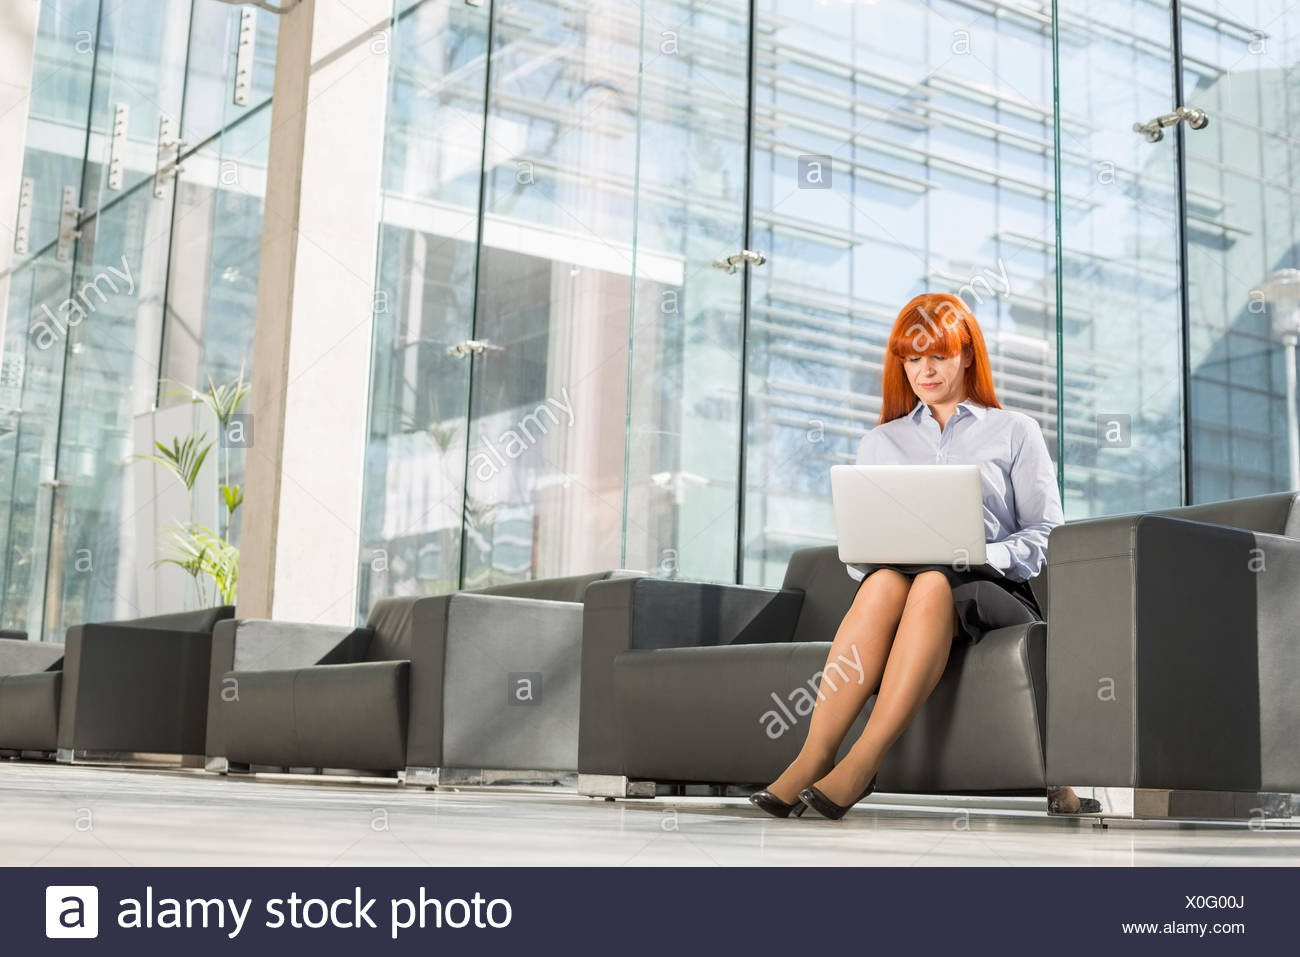 Full-length of middle-aged woman using laptop at office lobby Photo Stock